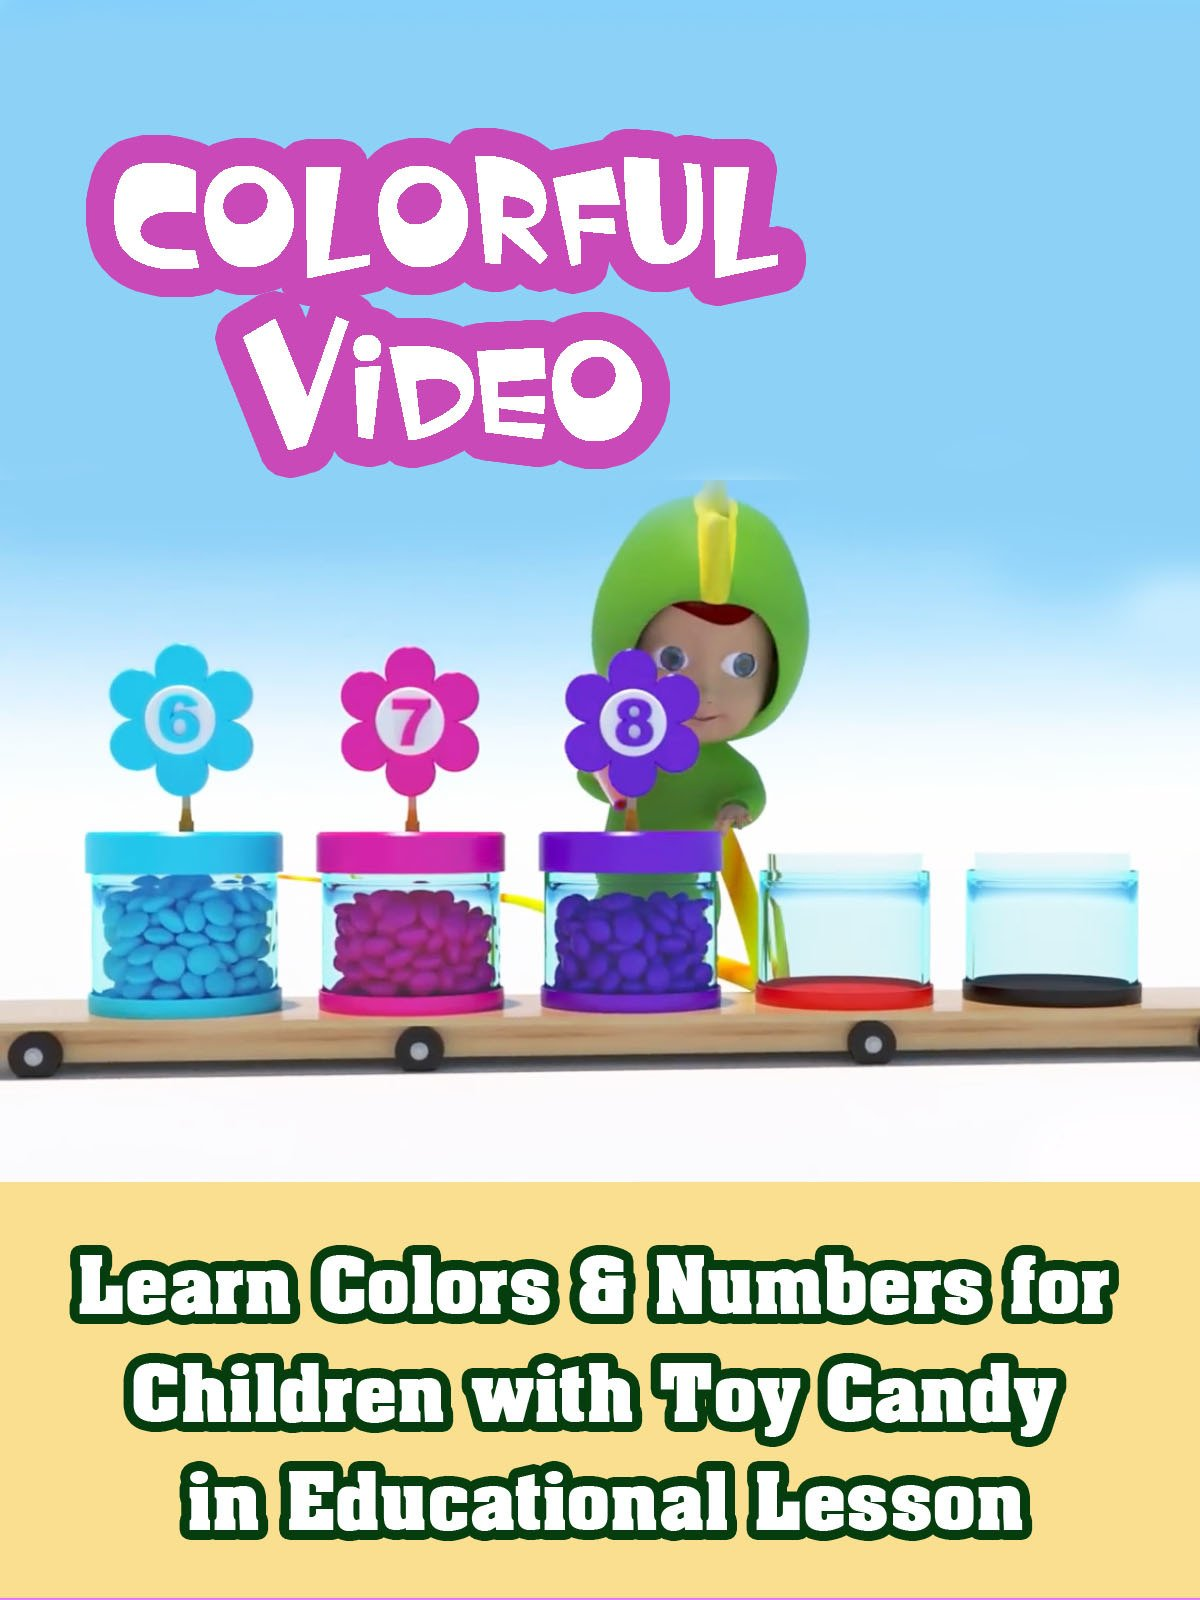 Learn Colors and Numbers for Children with Toy Candy in Educational Lesson